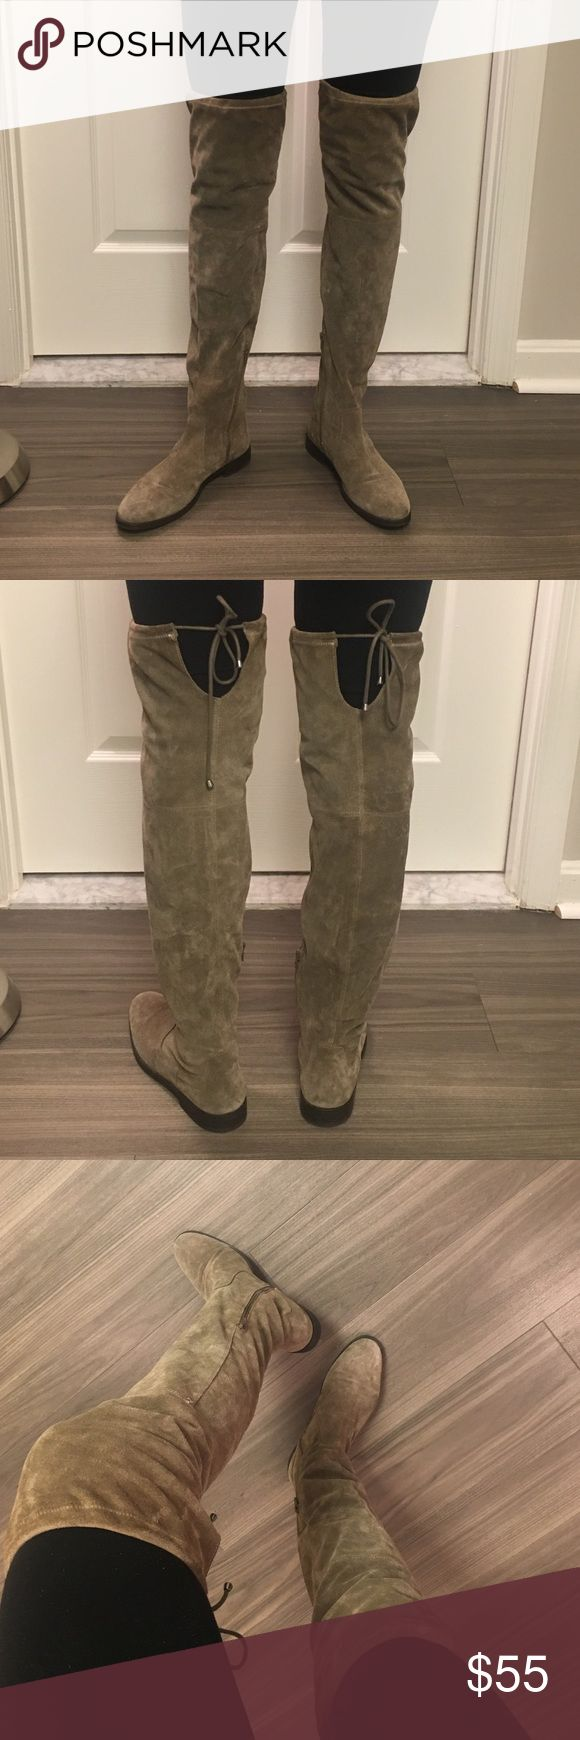 Been worn once! Thigh high Aldo boots. Size 9 Size 9. Aldo Boots. Only have worn once! I already have a pair of these so I want someone else to enjoy ;) Aldo Shoes